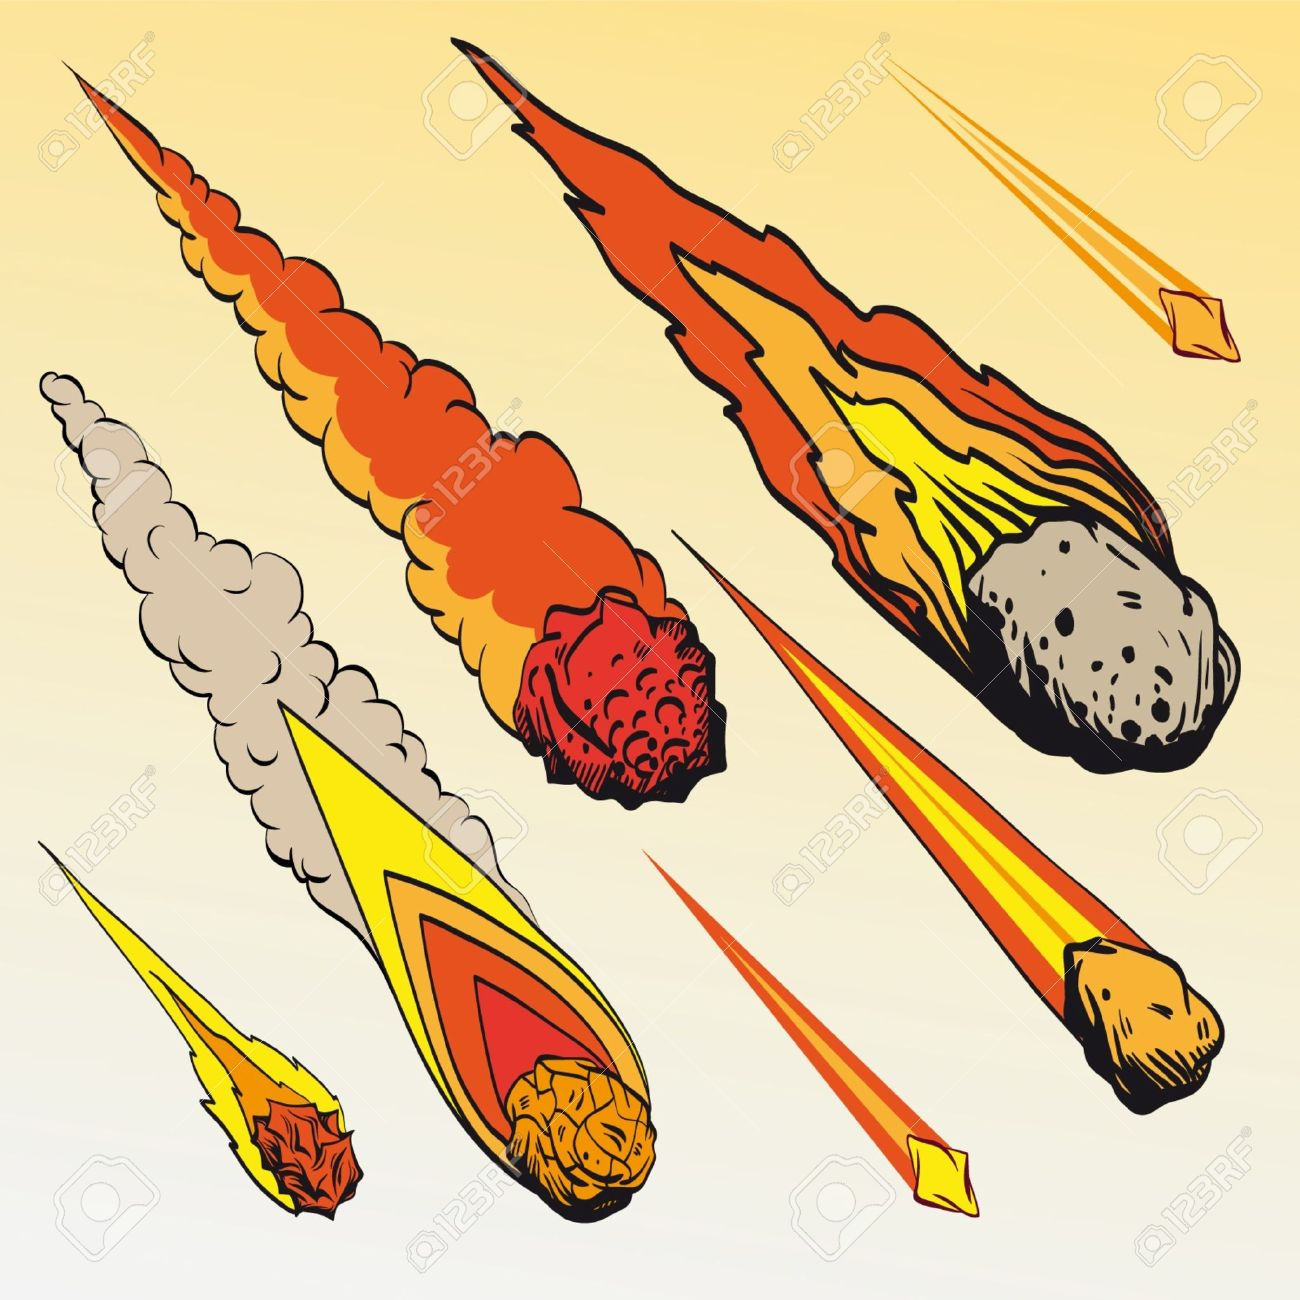 8,883 Meteor Stock Vector Illustration And Royalty Free Meteor Clipart.